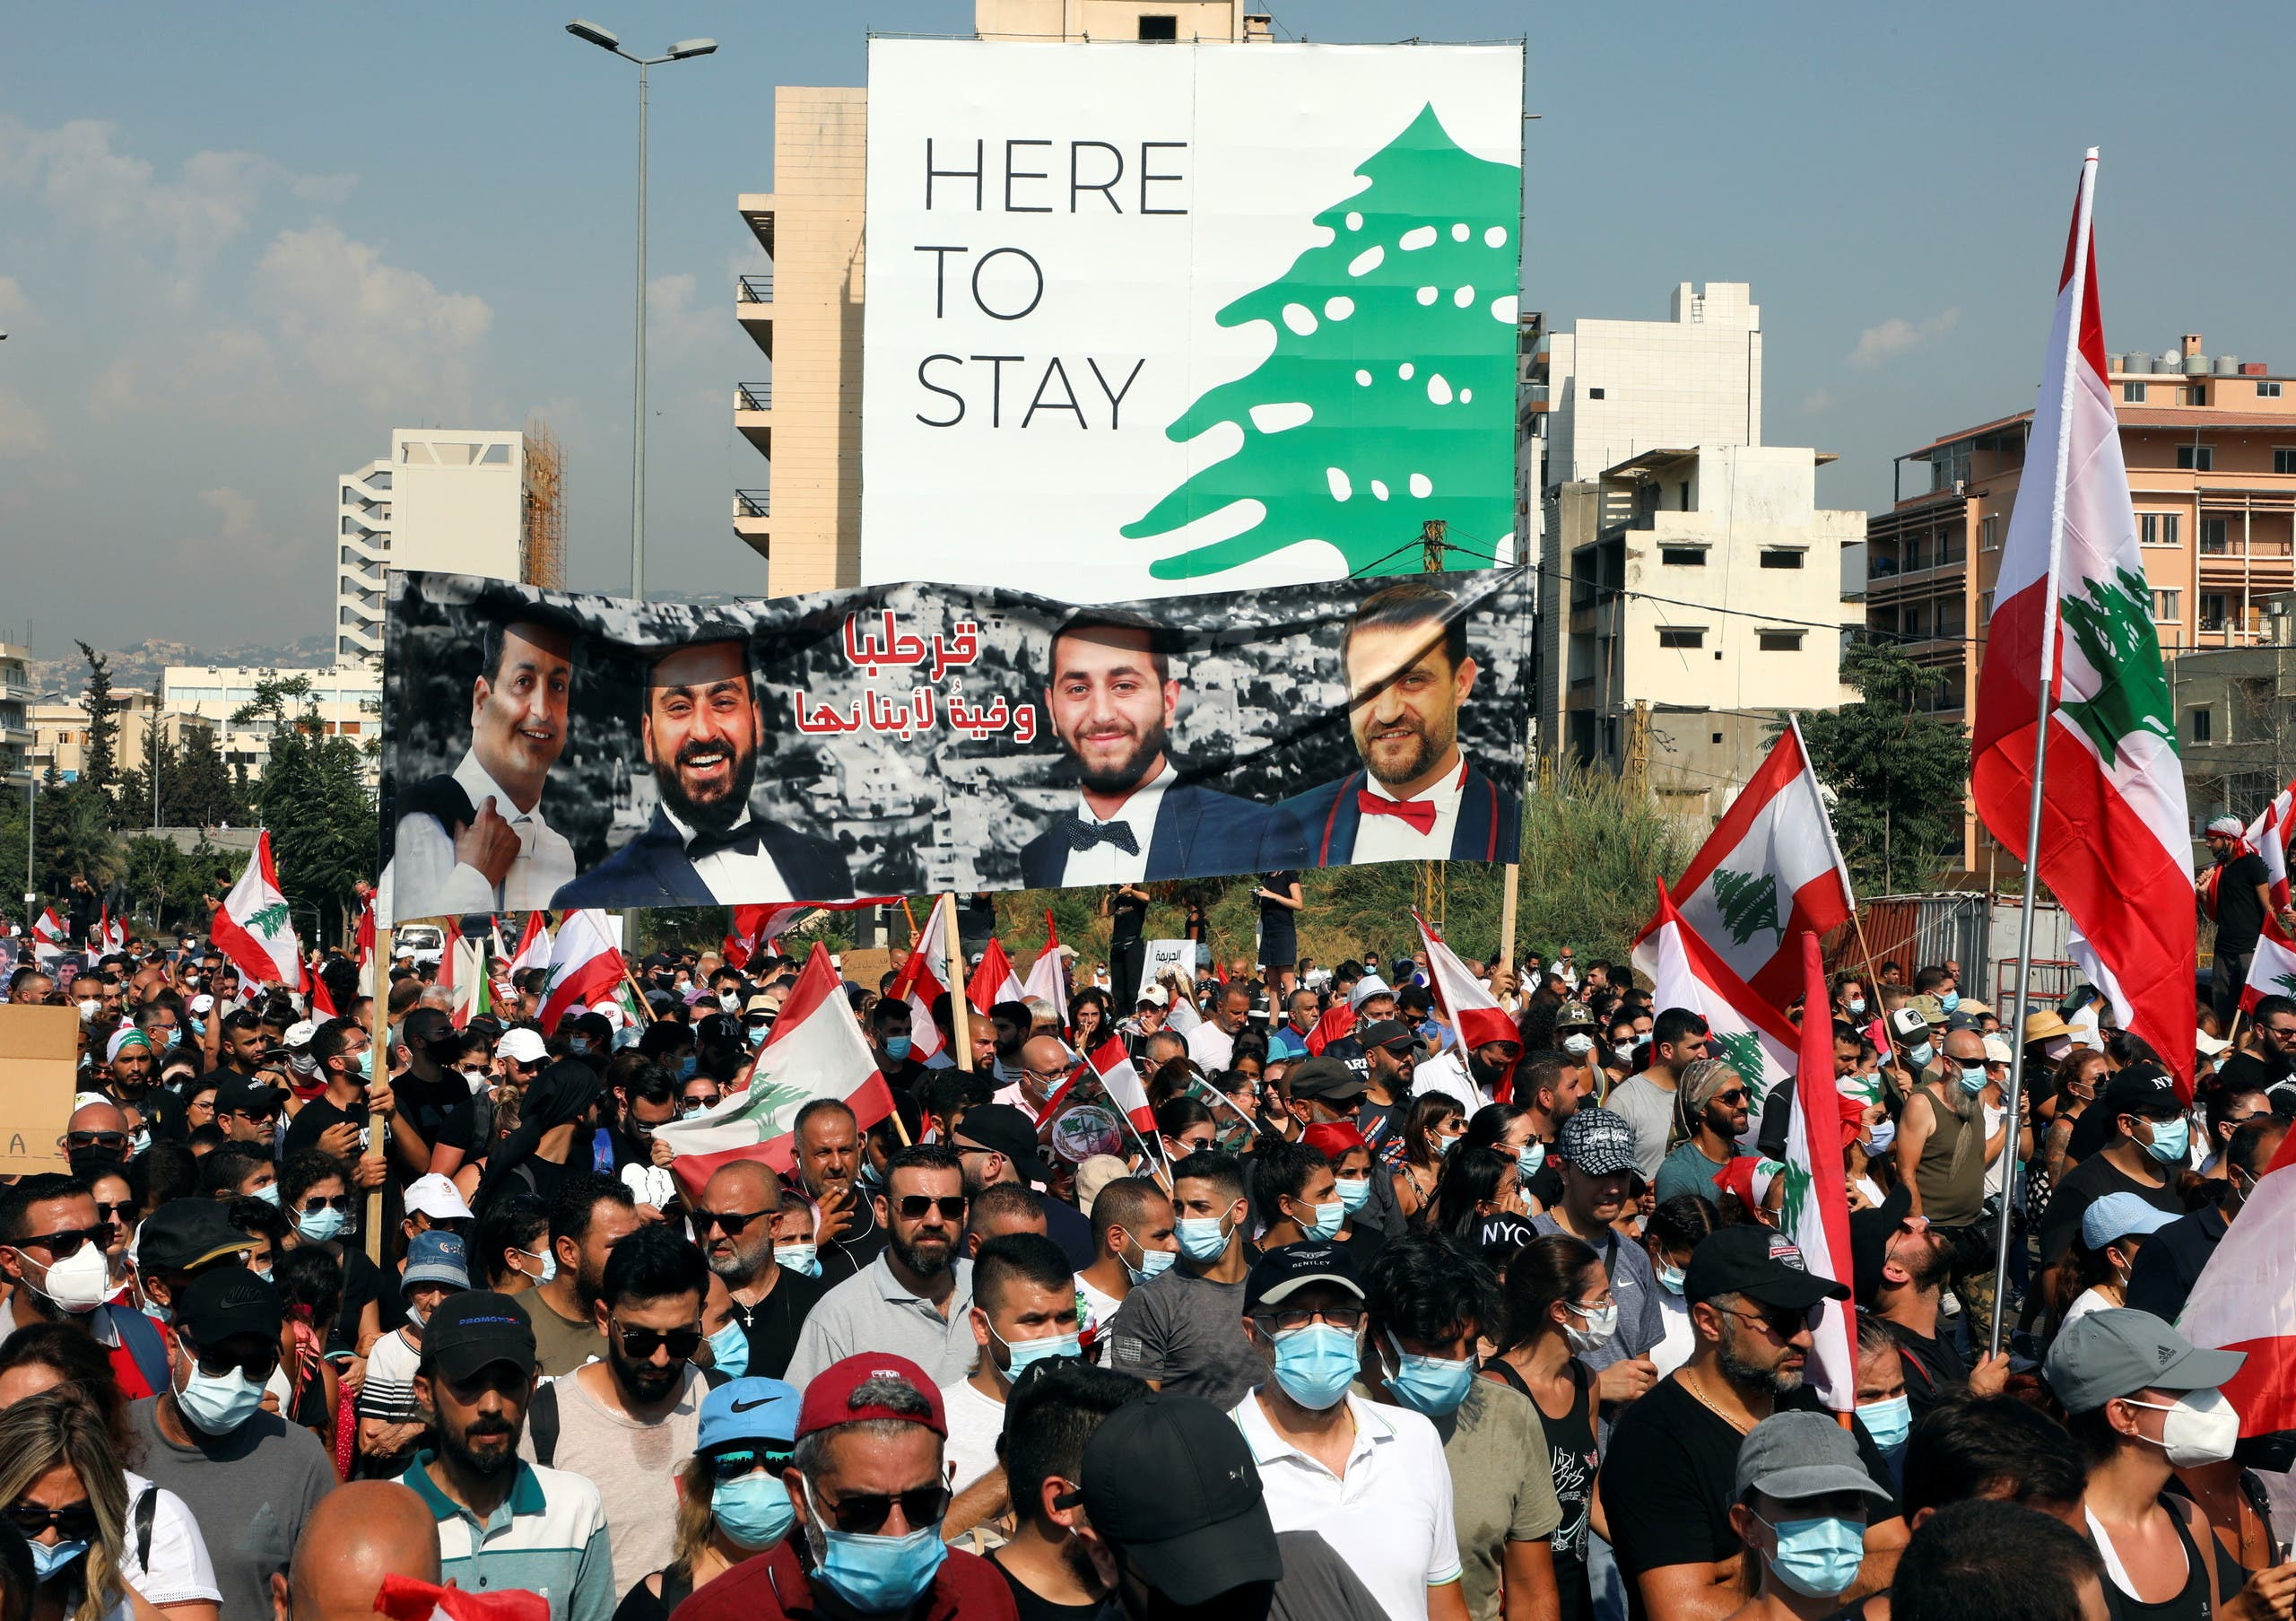 From today's demonstration in Beirut